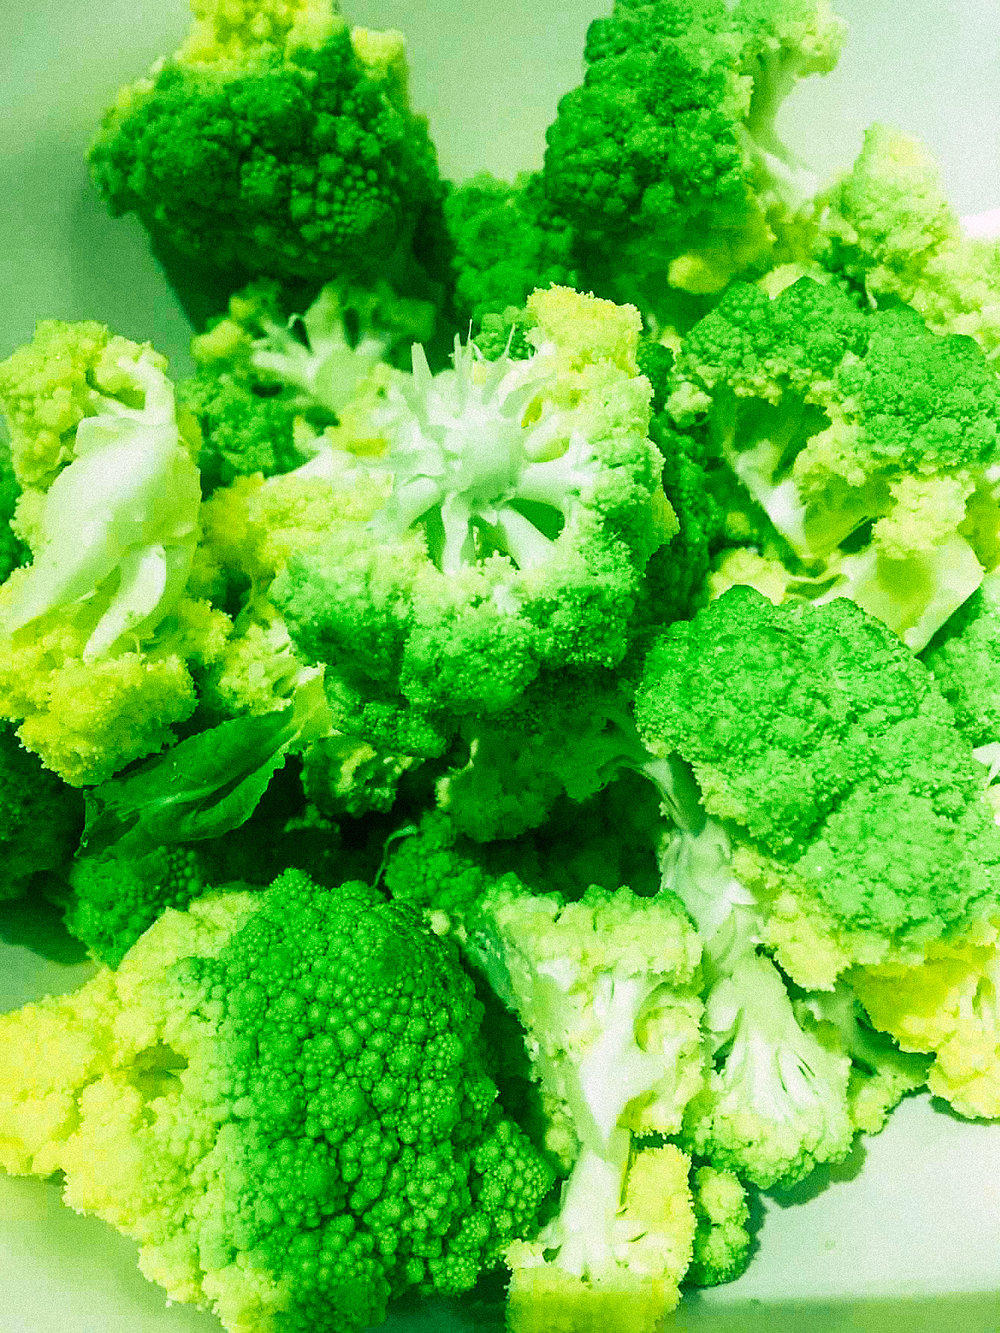 The romanesco was so beautiful at Pike Place Market, I couldn't resist substituting this for cauliflower in the recipe. It was amazing!